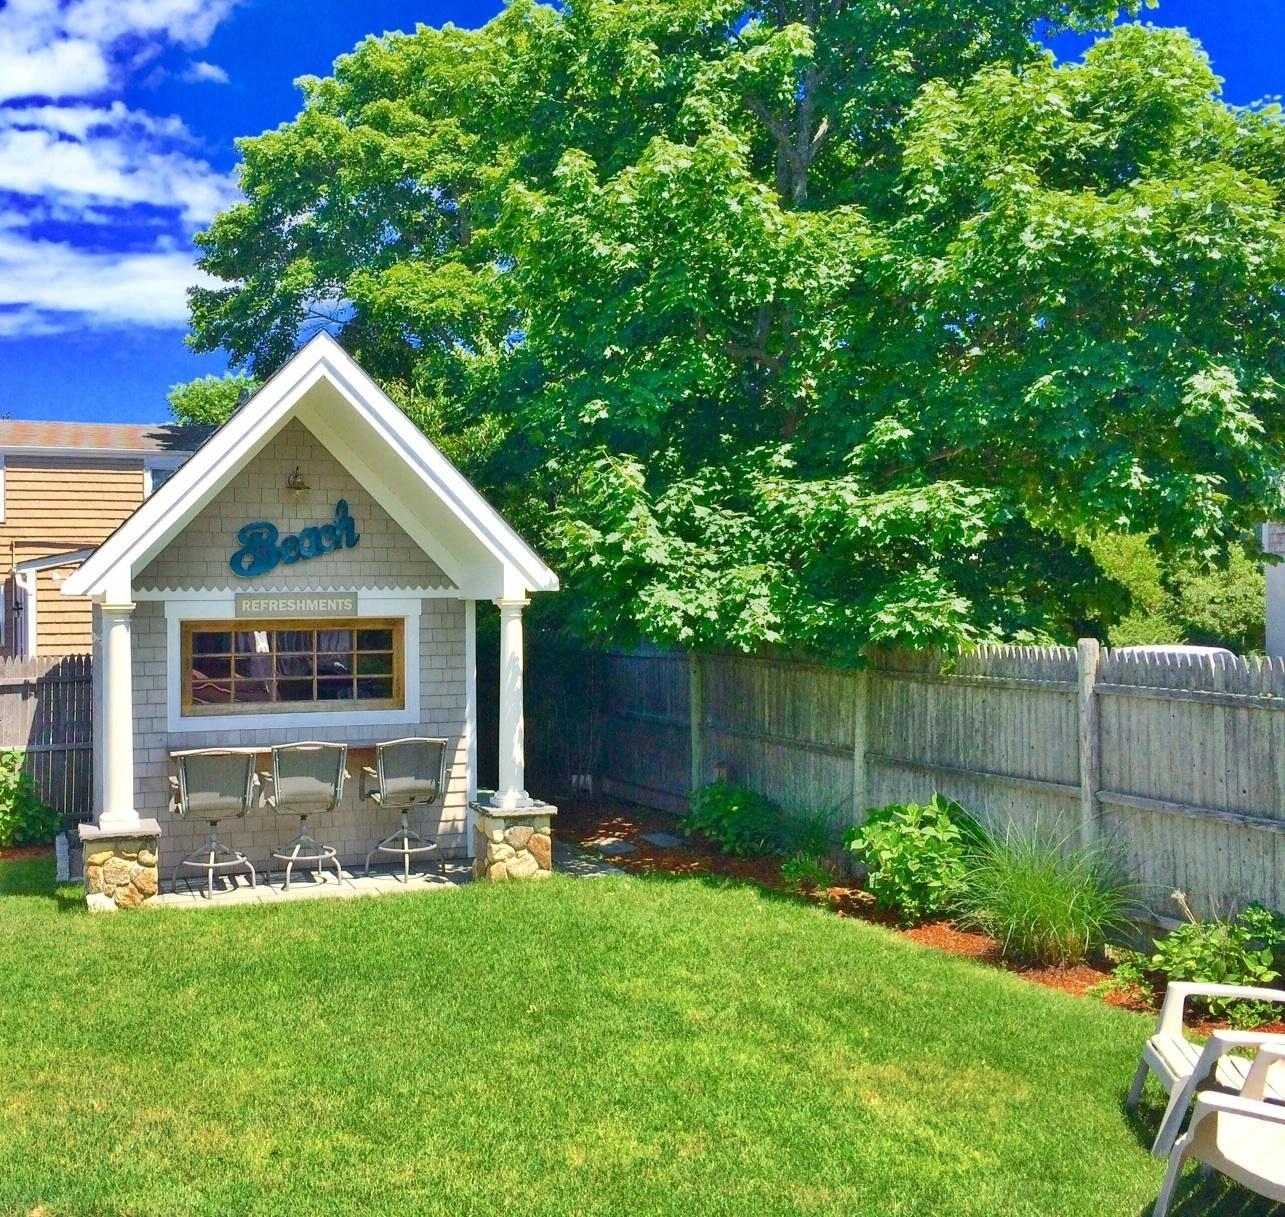 Hyannis Vacation Rental Home In Cape Cod MA 02601, 4/10 Mi